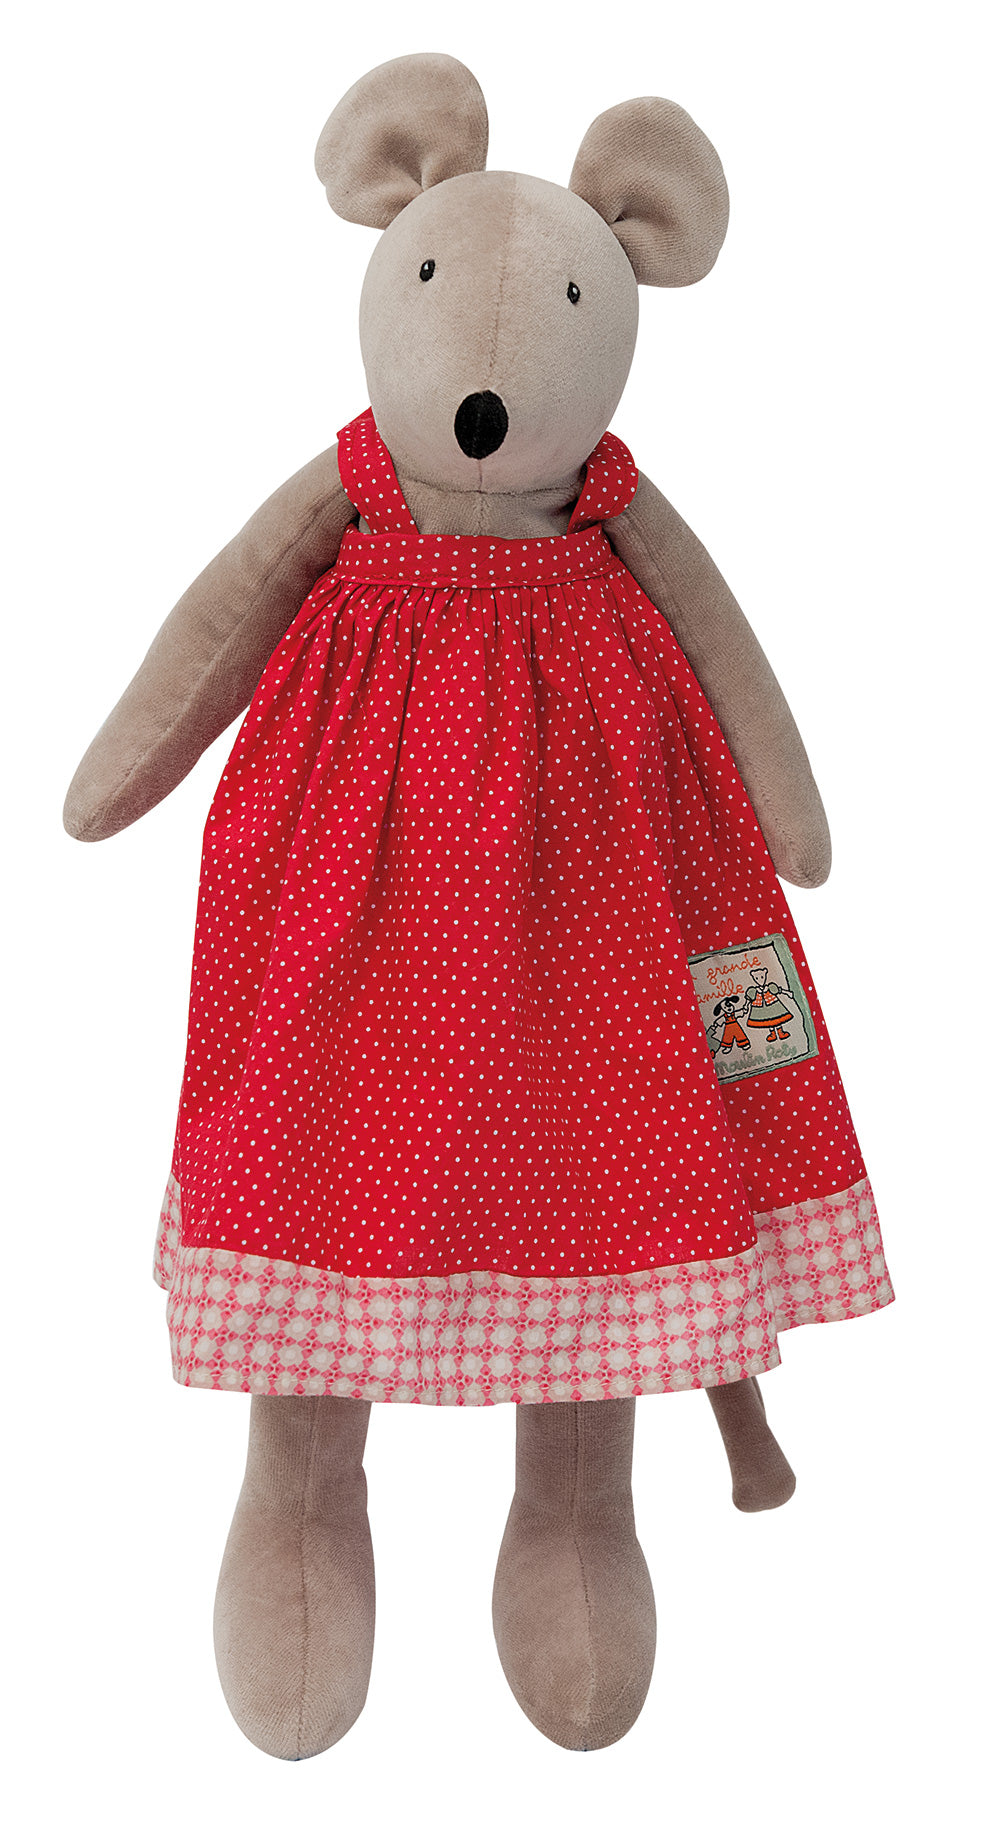 Made from very soft velour, Nini the mouse, measuring 50cm, is dressed in a sophisticated French red cotton dress with white polkadots and a floral hem border.